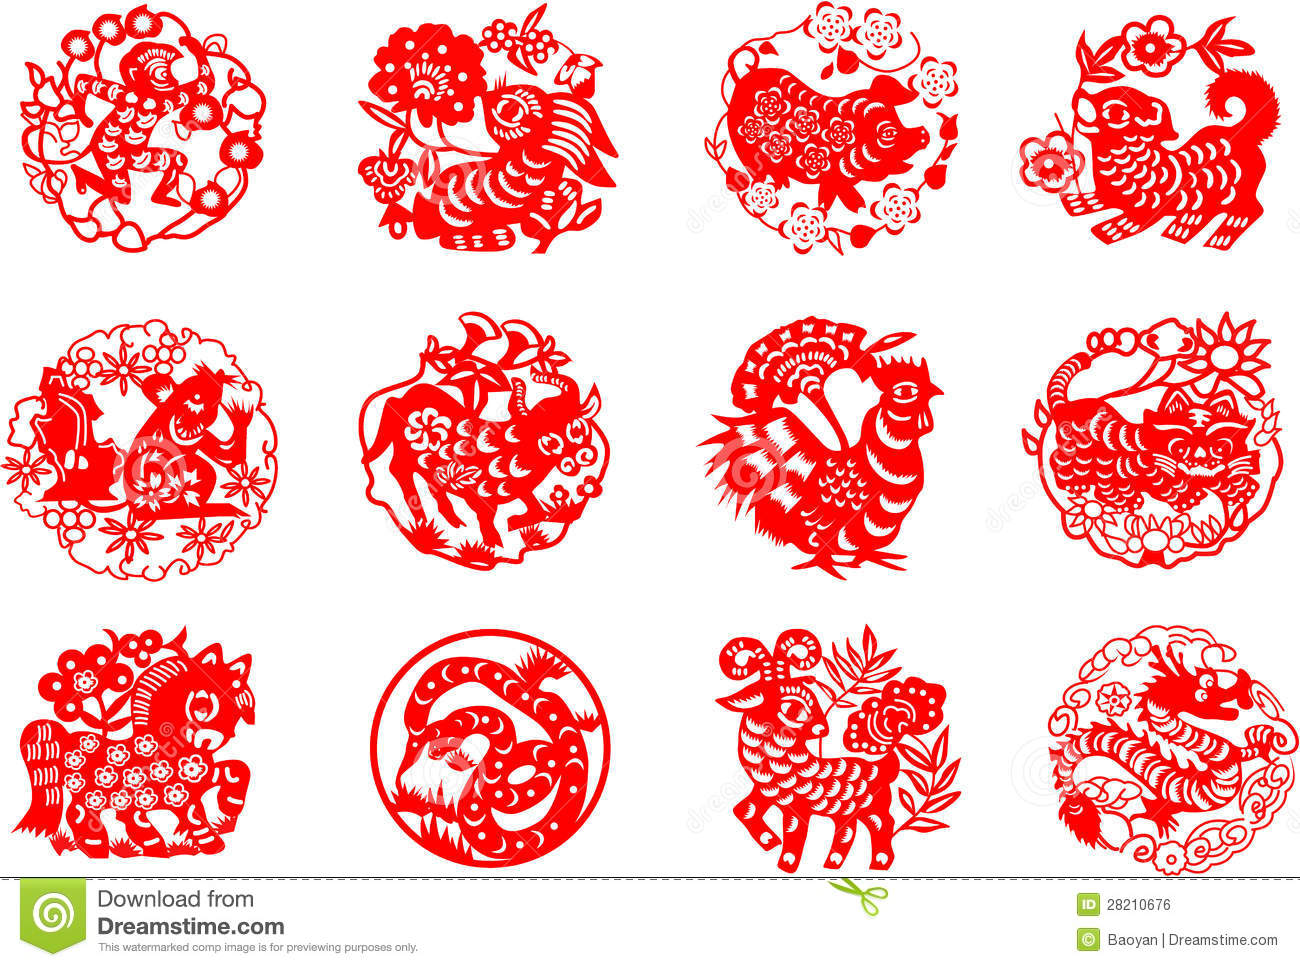 Animals Of Chinese Calendar Royalty Free Stock Image - Image: 28210676